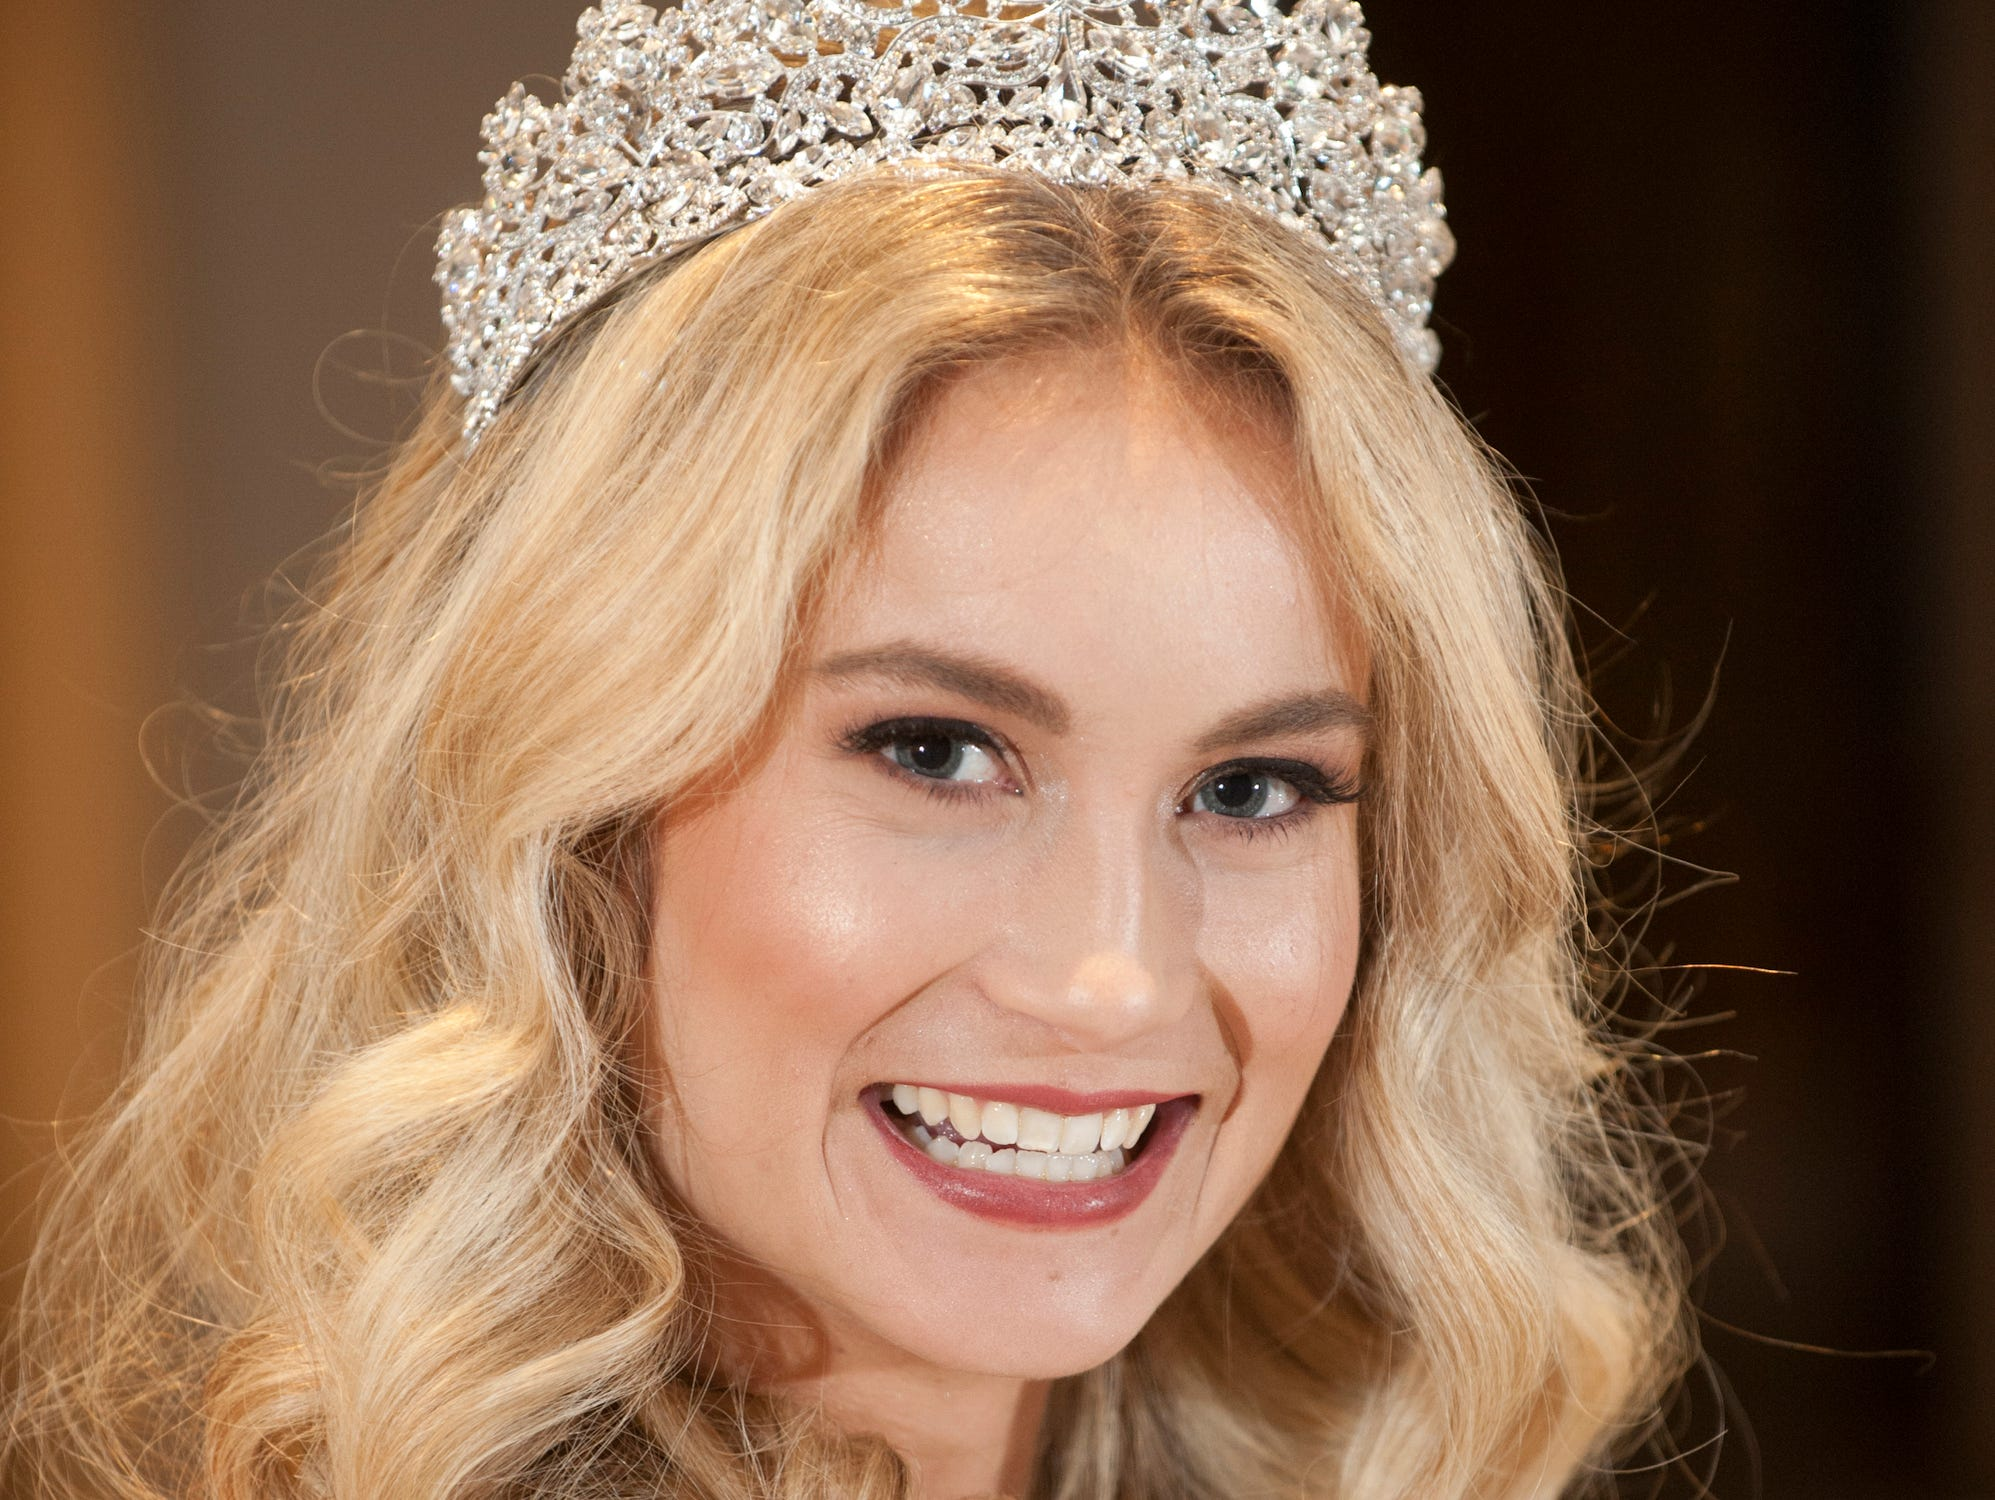 Kentucky Derby Festival Princess Allison Spears, 21, of Catlettsburg, Ky., is a junior at the University of Kentucky majoring in pre-law and neuroscience.  06 January 2019